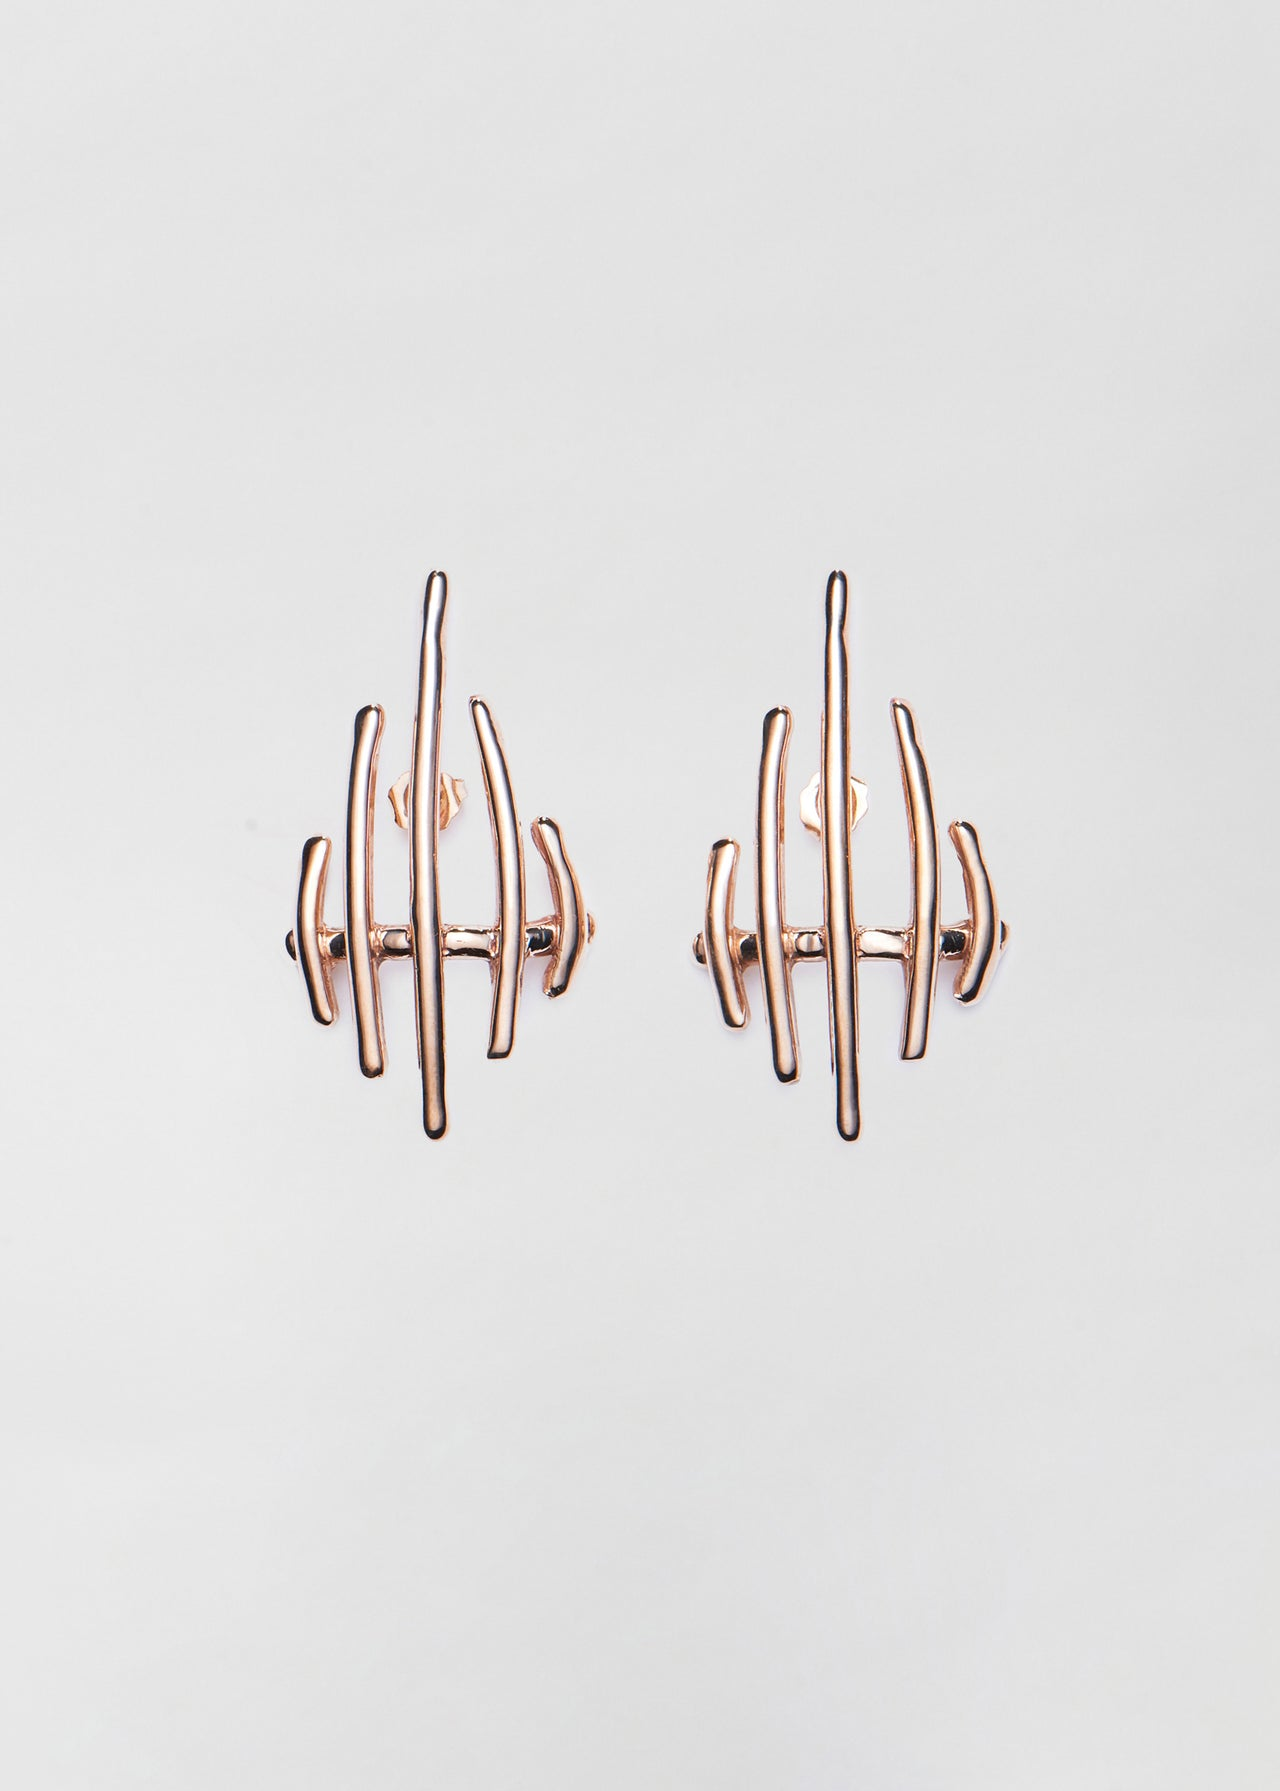 Sculptural Earrings in Bronze